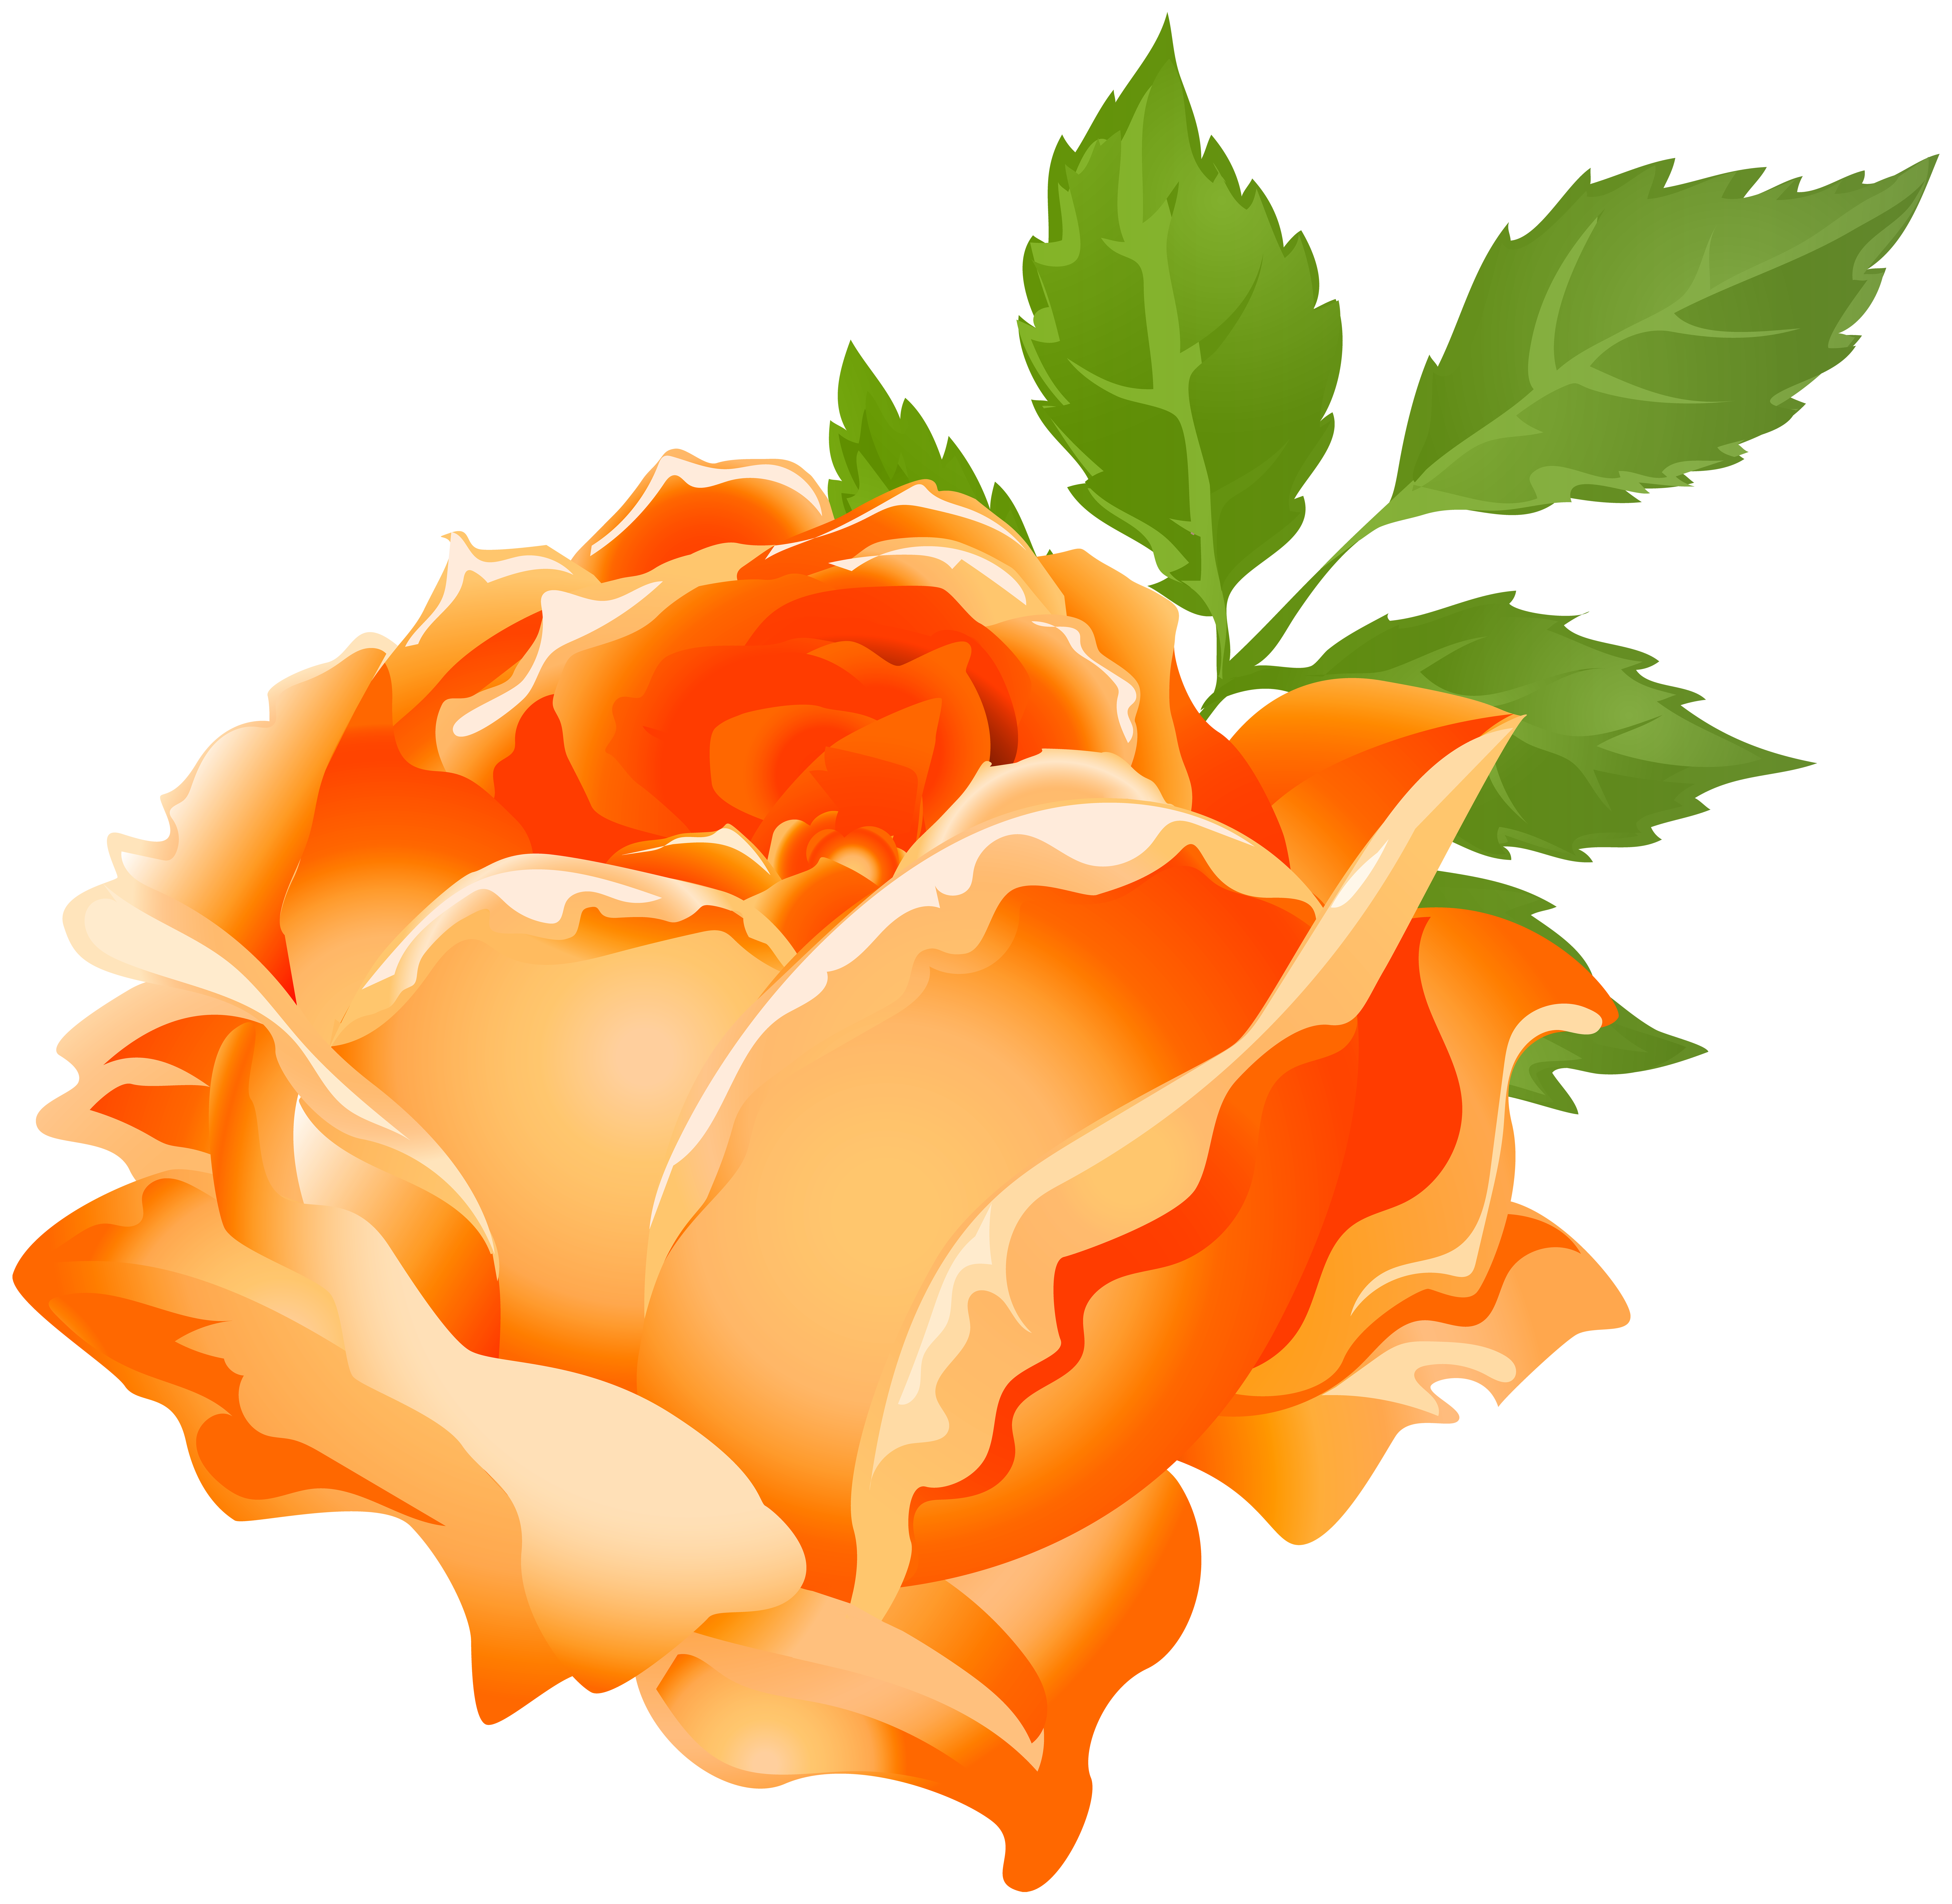 Orange png clip art. Rose clipart stick